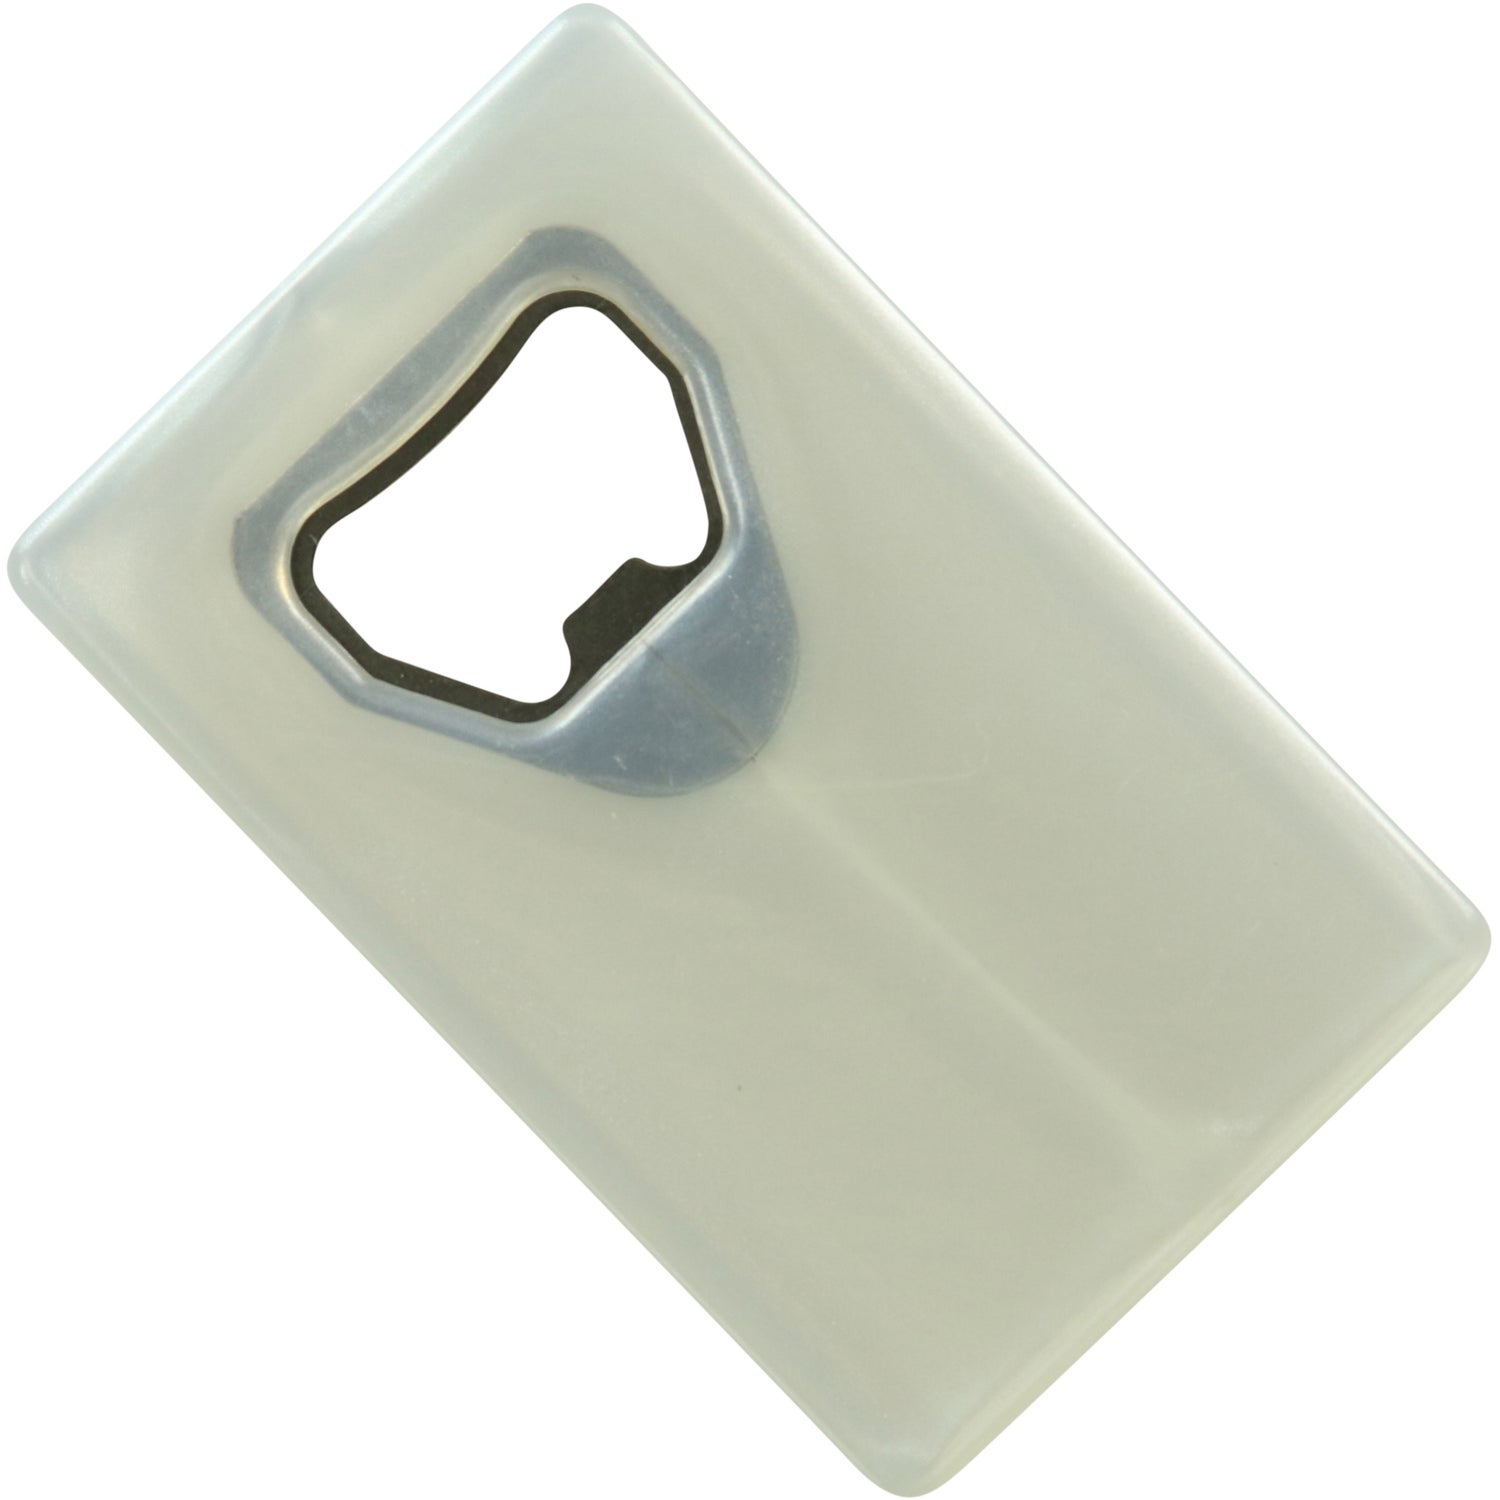 Promotional Credit Card Bottle Openers with Custom Logo for $0.807 Ea.